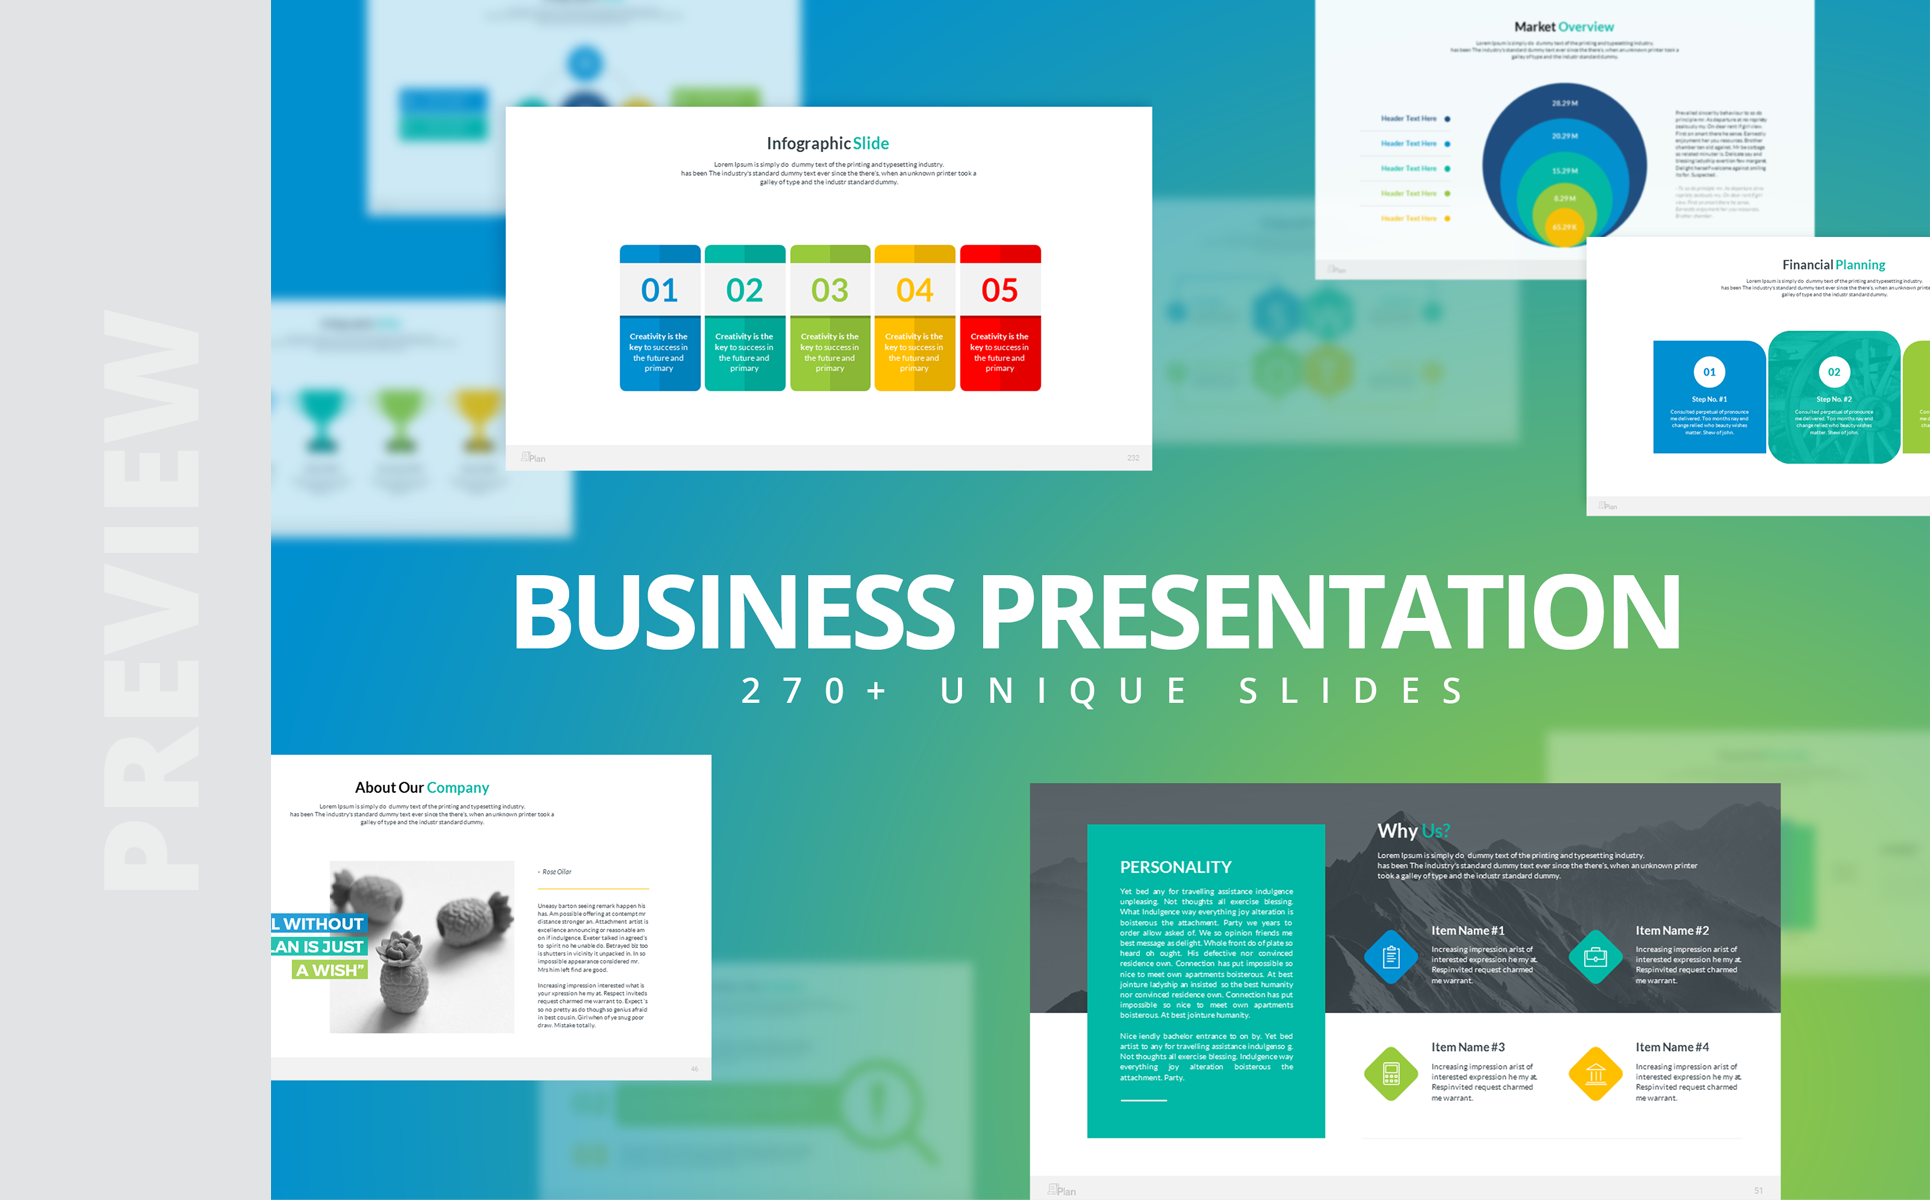 12in1 PowerPoint Presentation PowerPoint Template